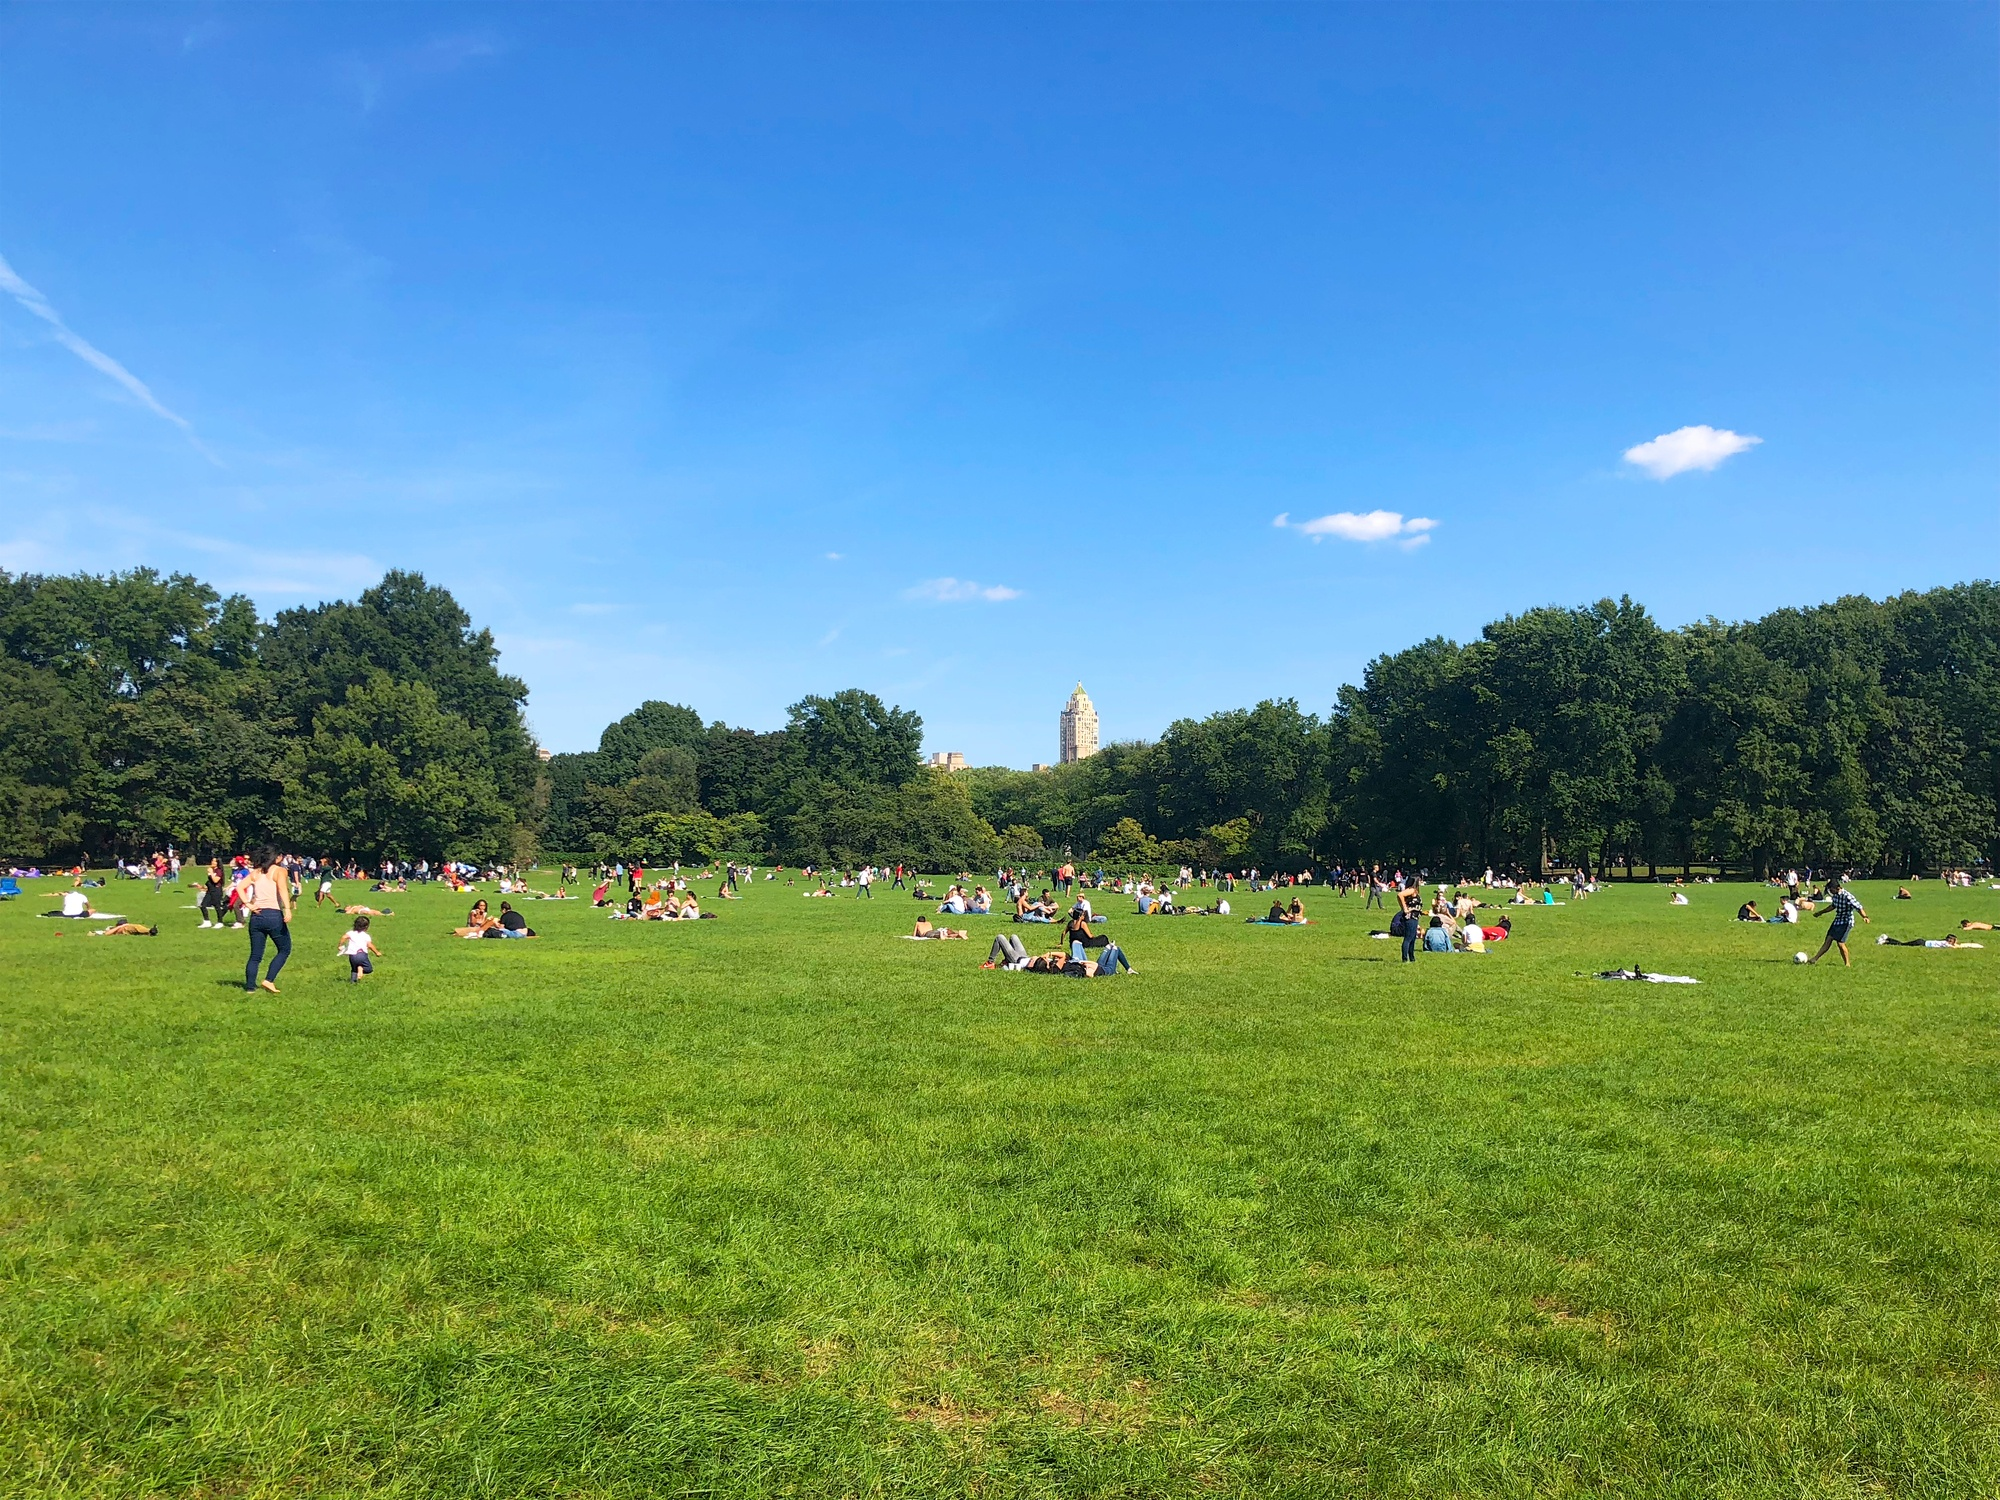 Picnickers on Sheep Meadow in Central Park